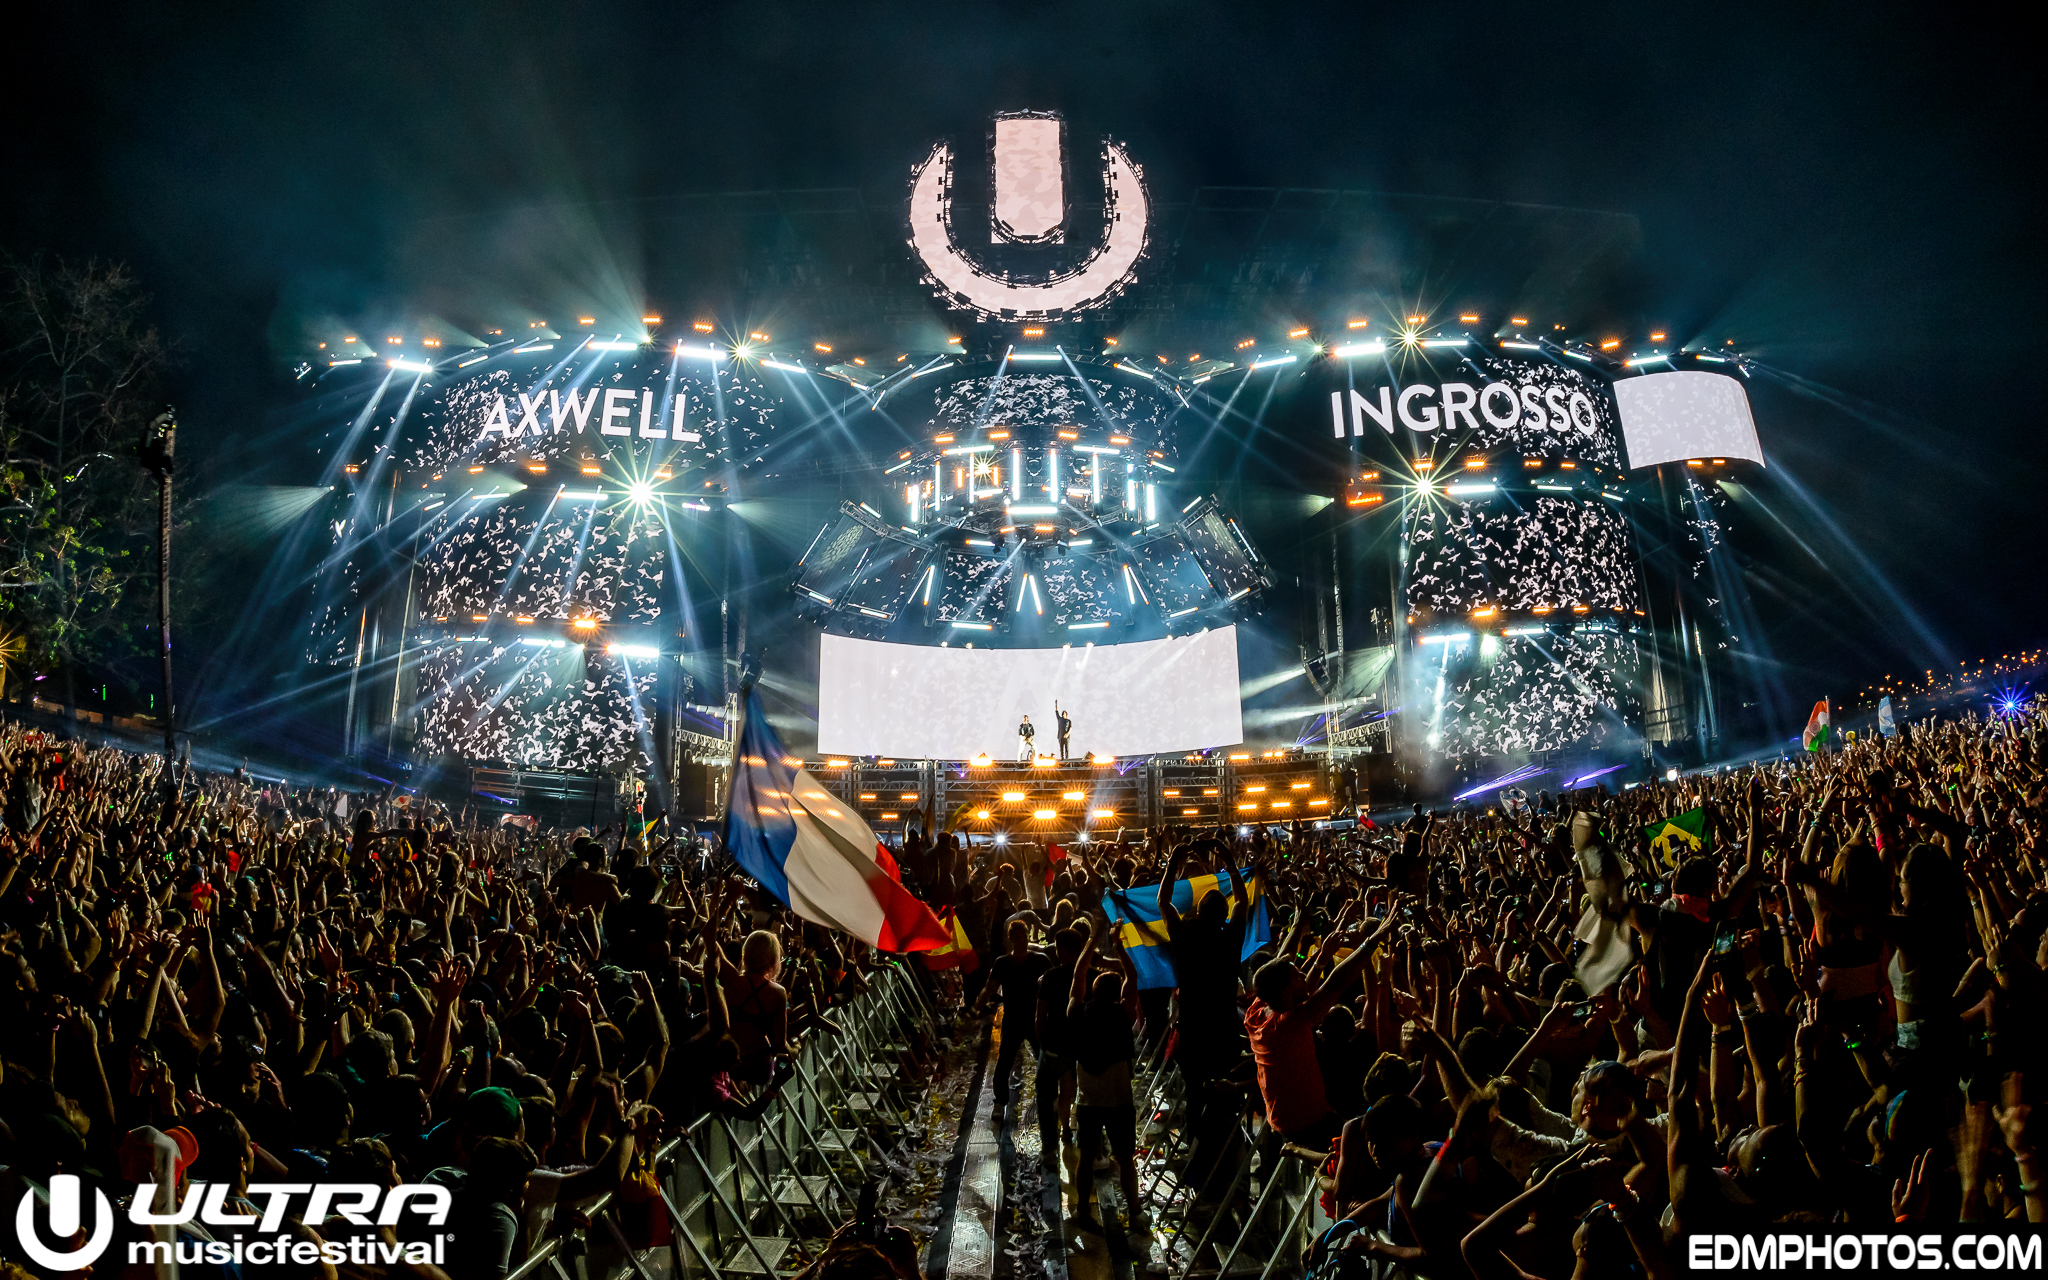 Few Arrests, And Glowing Remarks For This Year's Ultra Music Festival